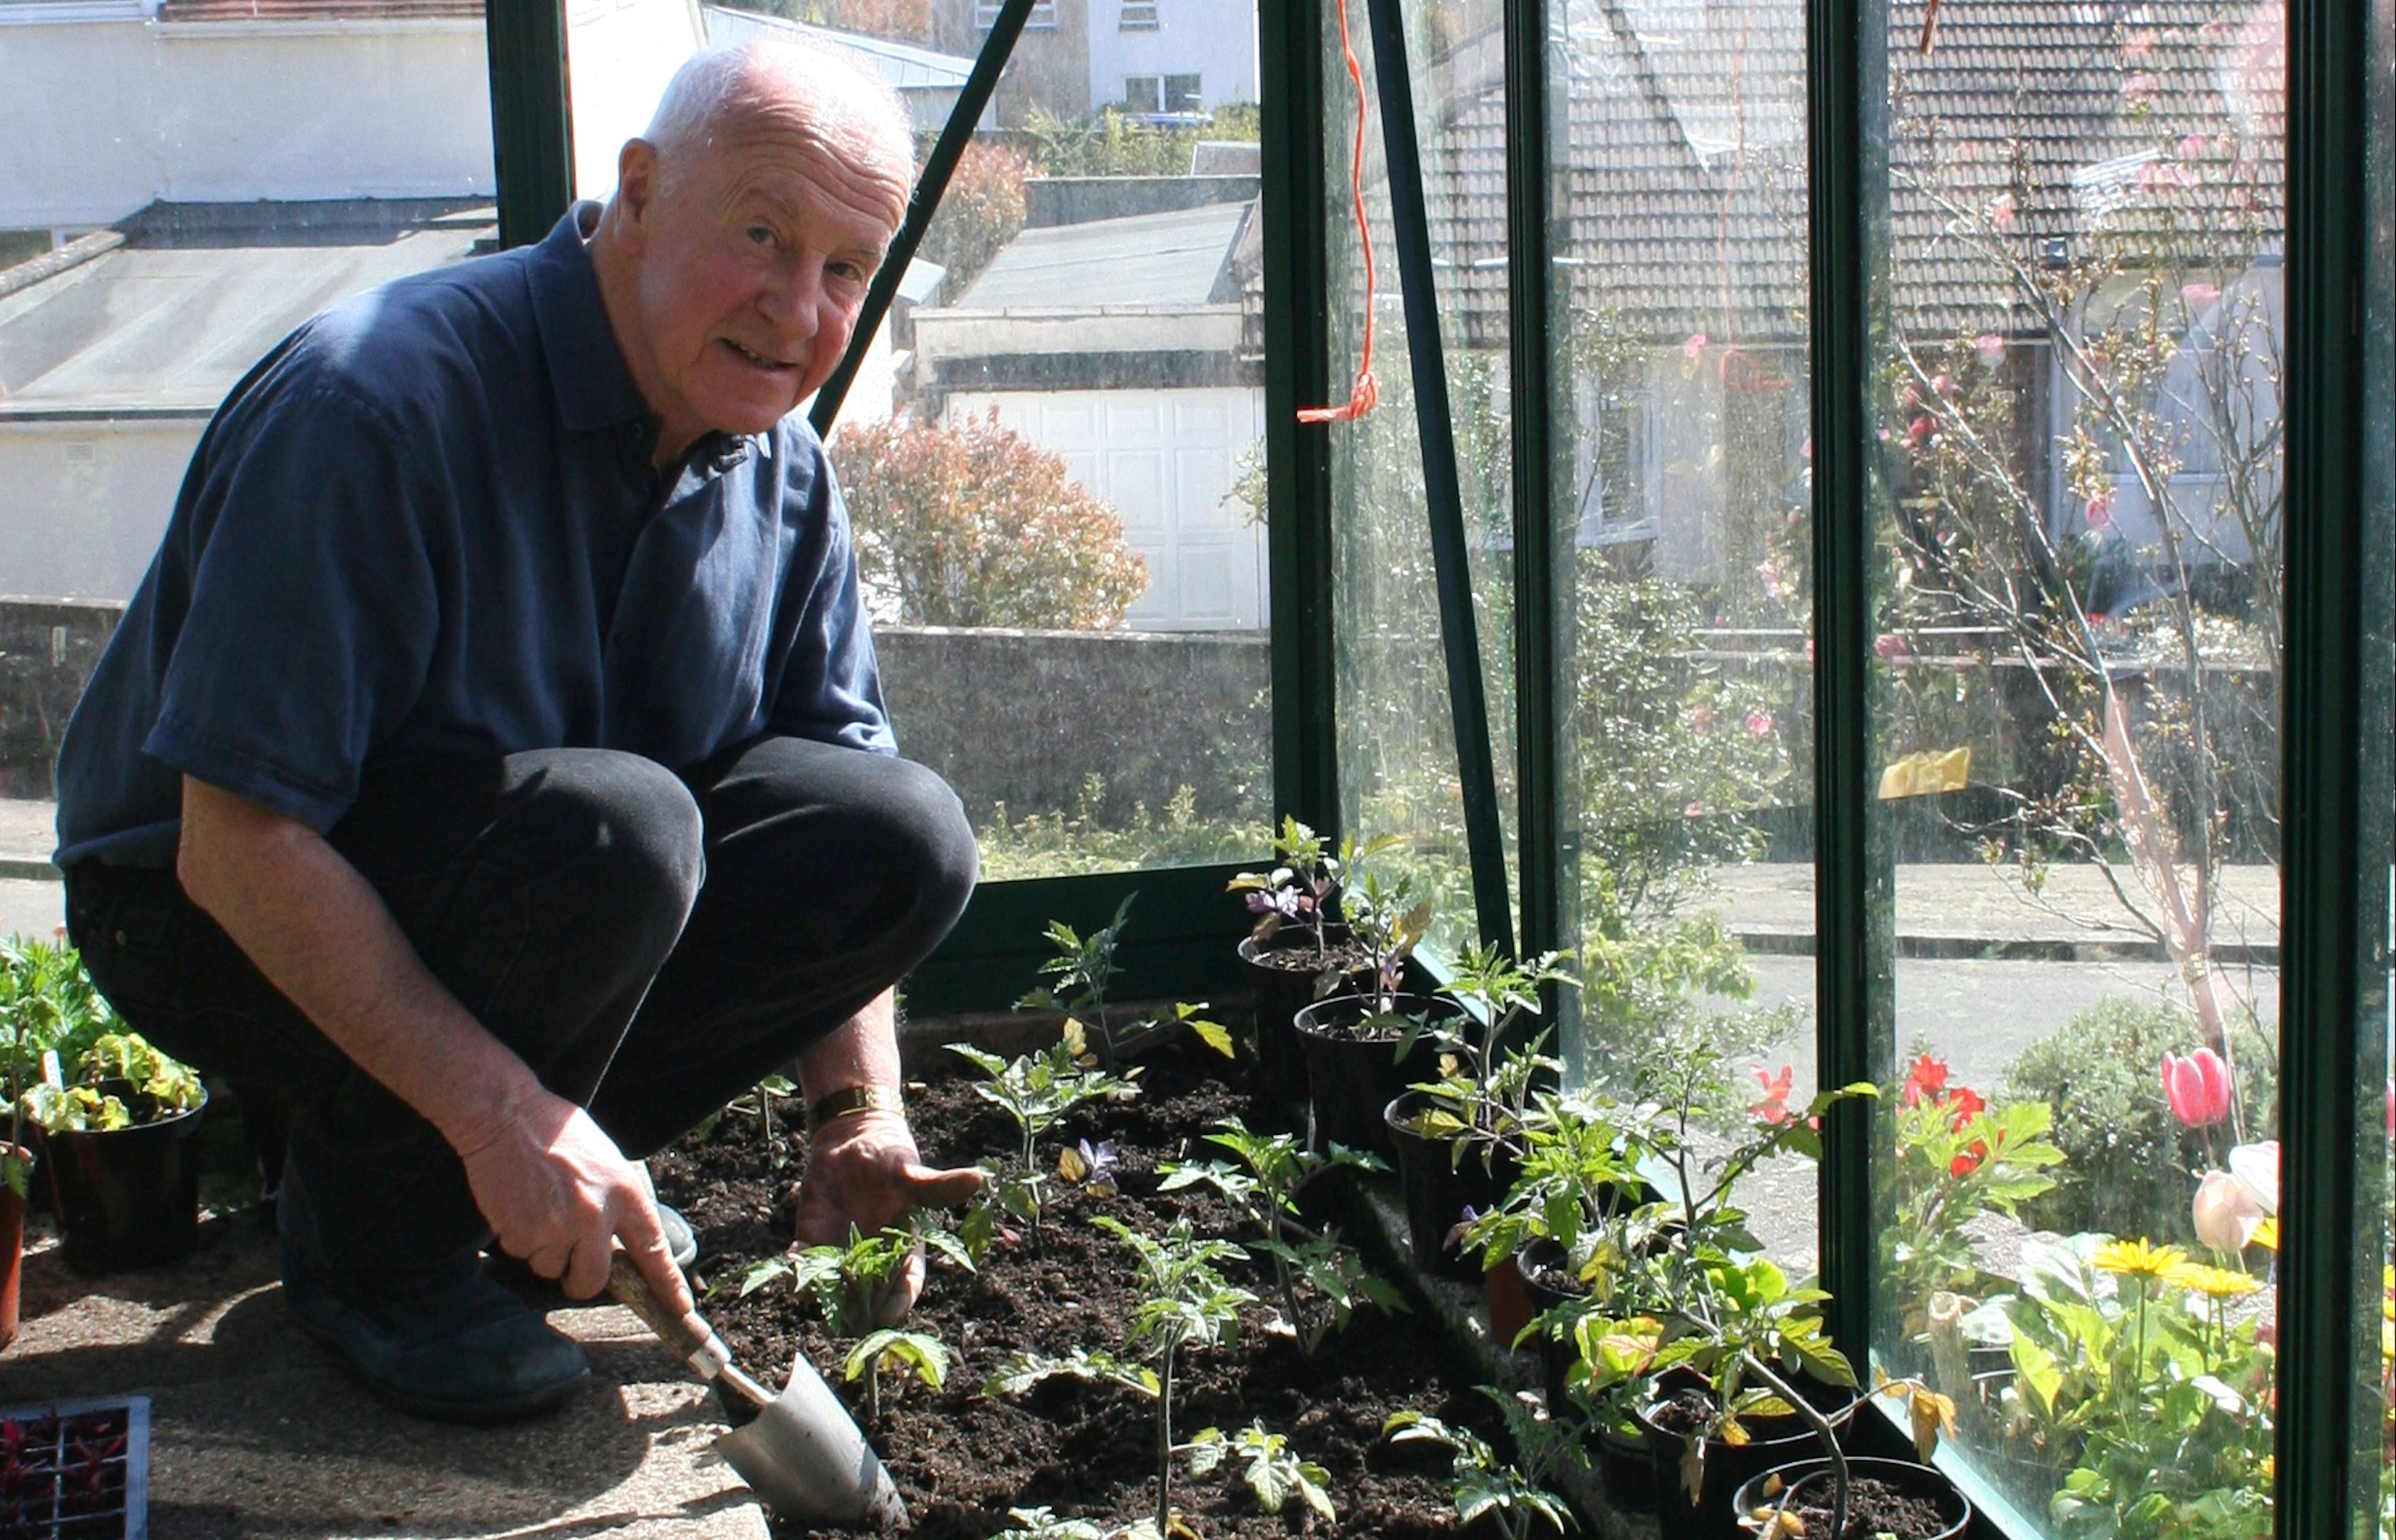 John planting tomatoes in the greenhouse.